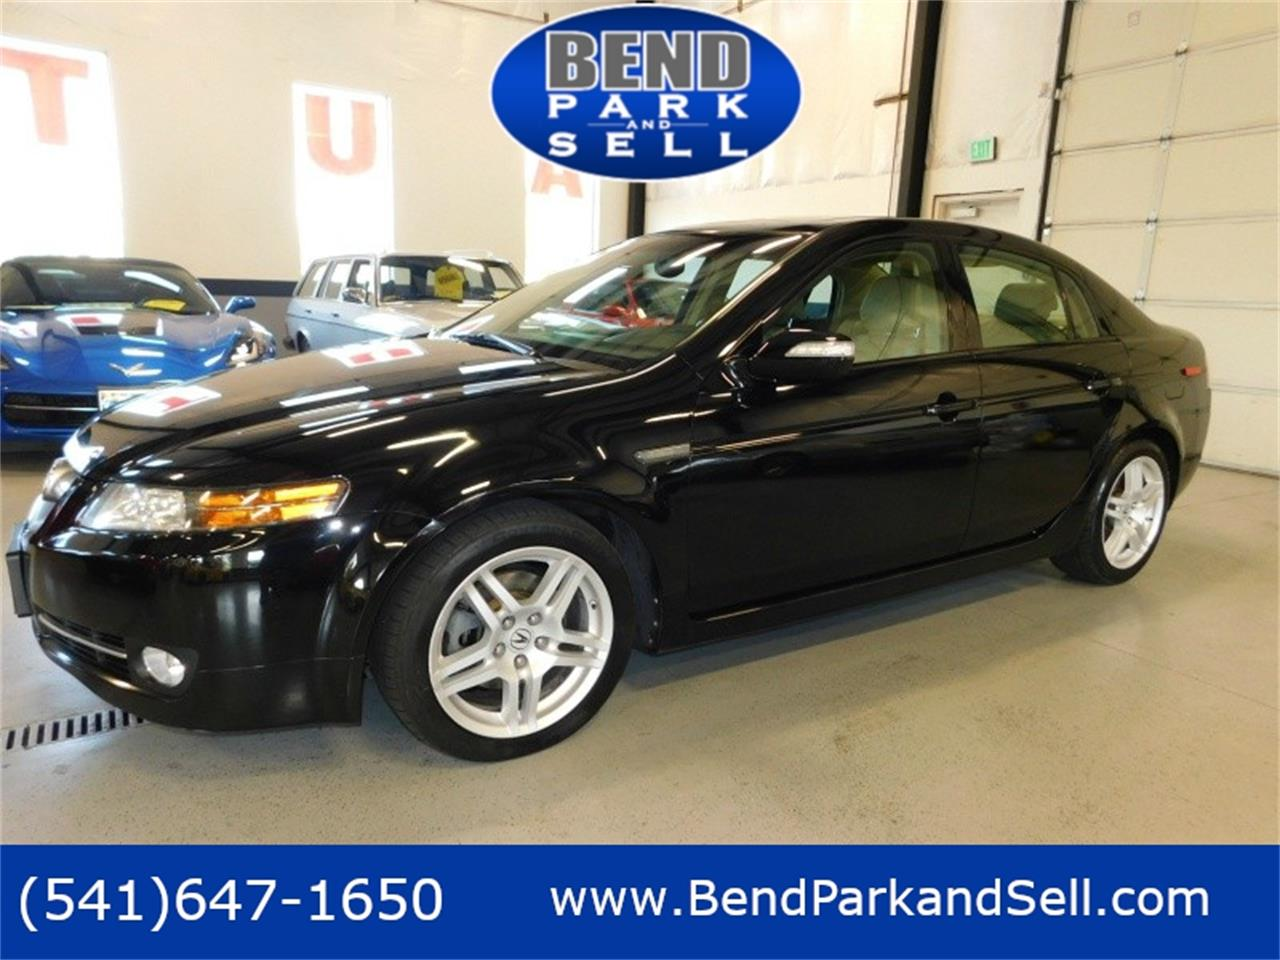 2008 Acura Tl For Sale >> For Sale 2008 Acura Tl In Bend Oregon